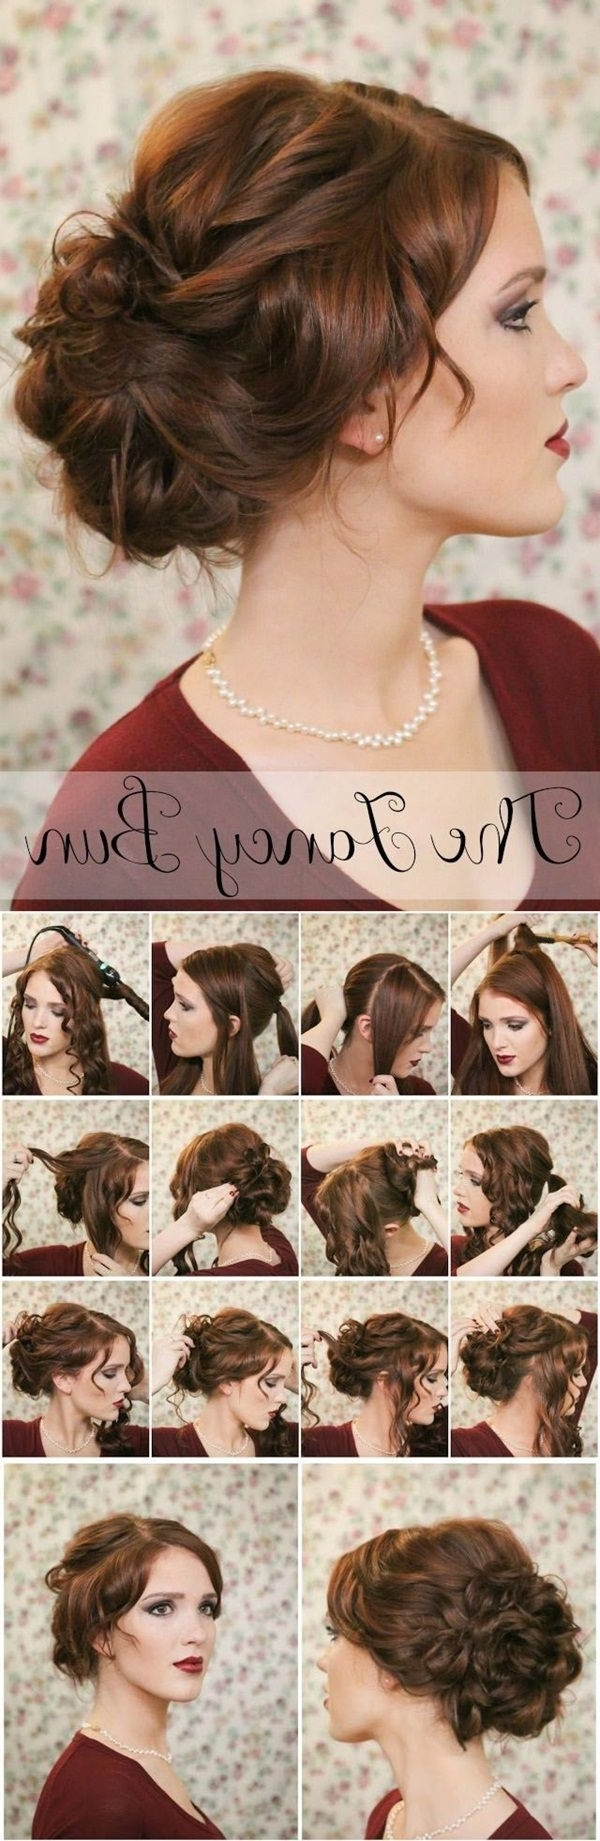 Latest Diy Simple Wedding Hairstyles For Long Hair With 20 Diy Wedding Hairstyles With Tutorials To Try On Your Own (View 15 of 15)